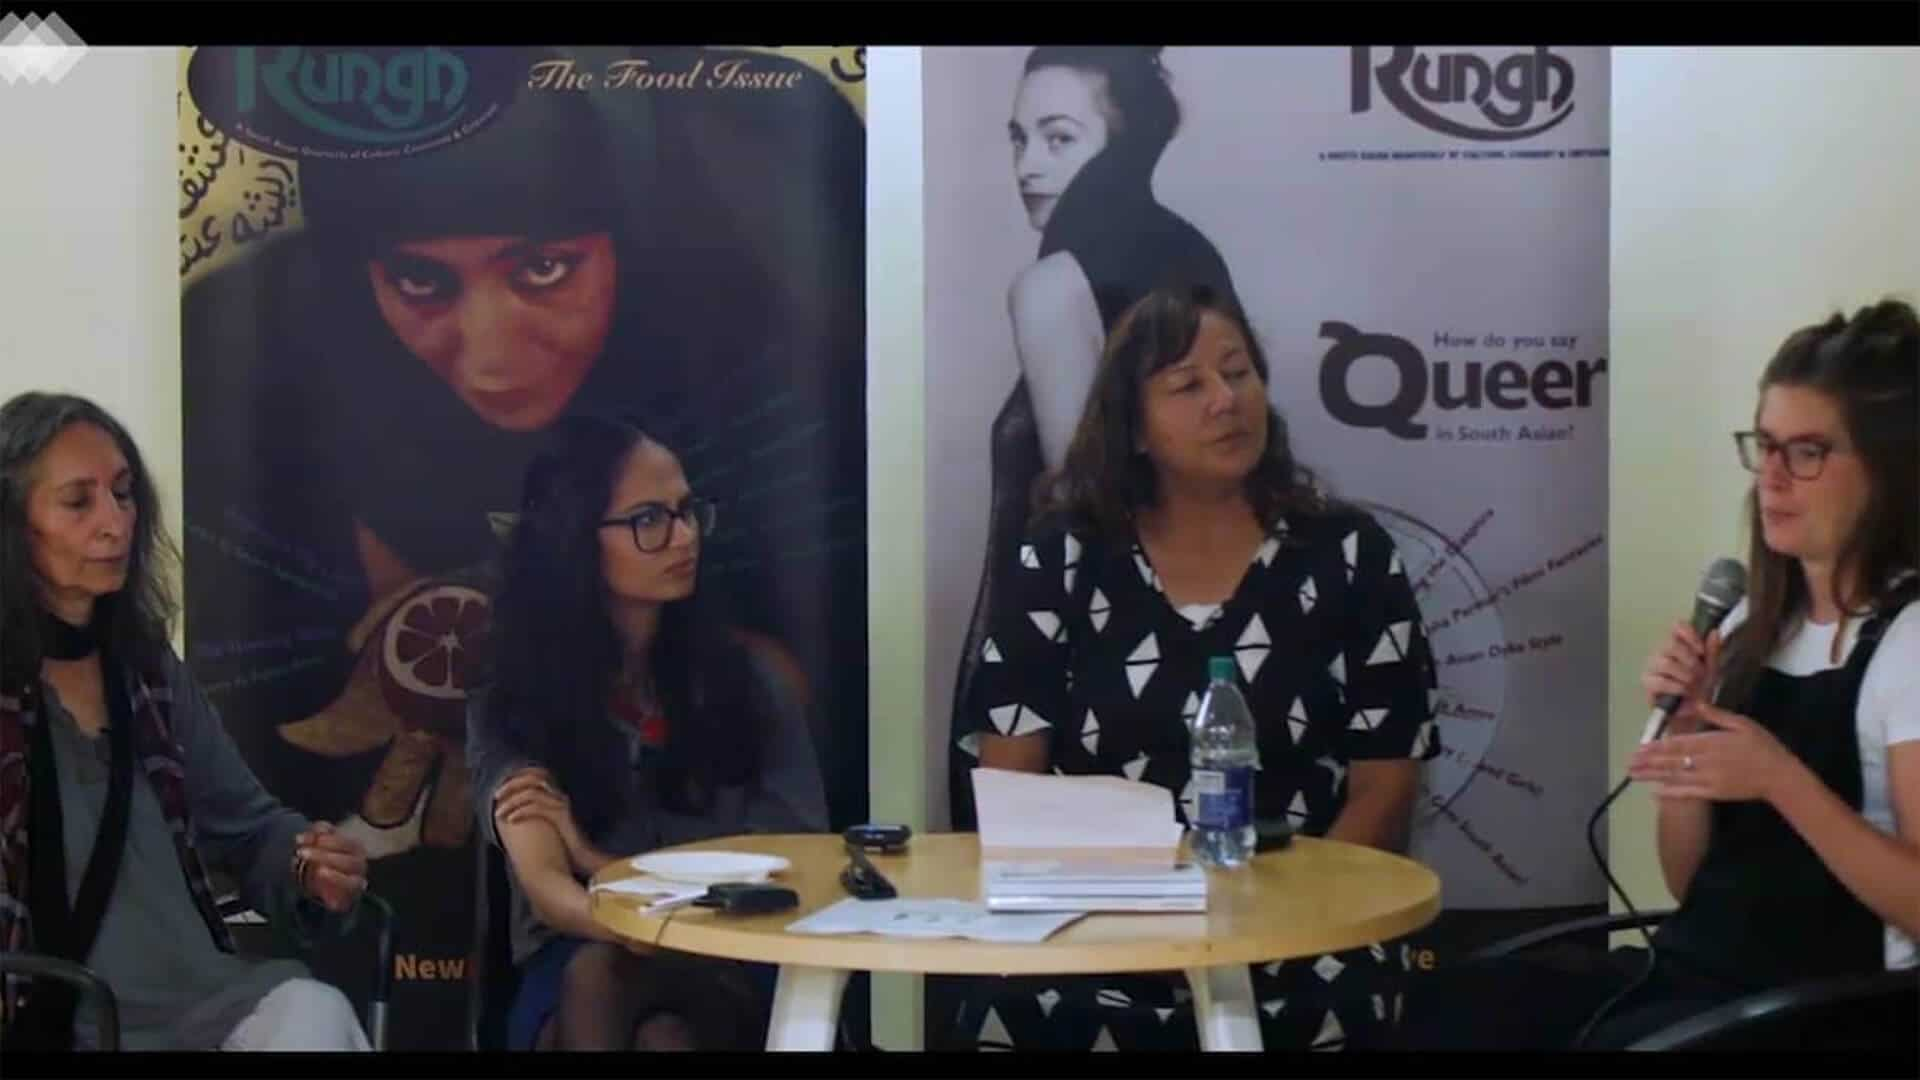 Roundtable - Rungh Readings at Full Circle: First Nations Performance